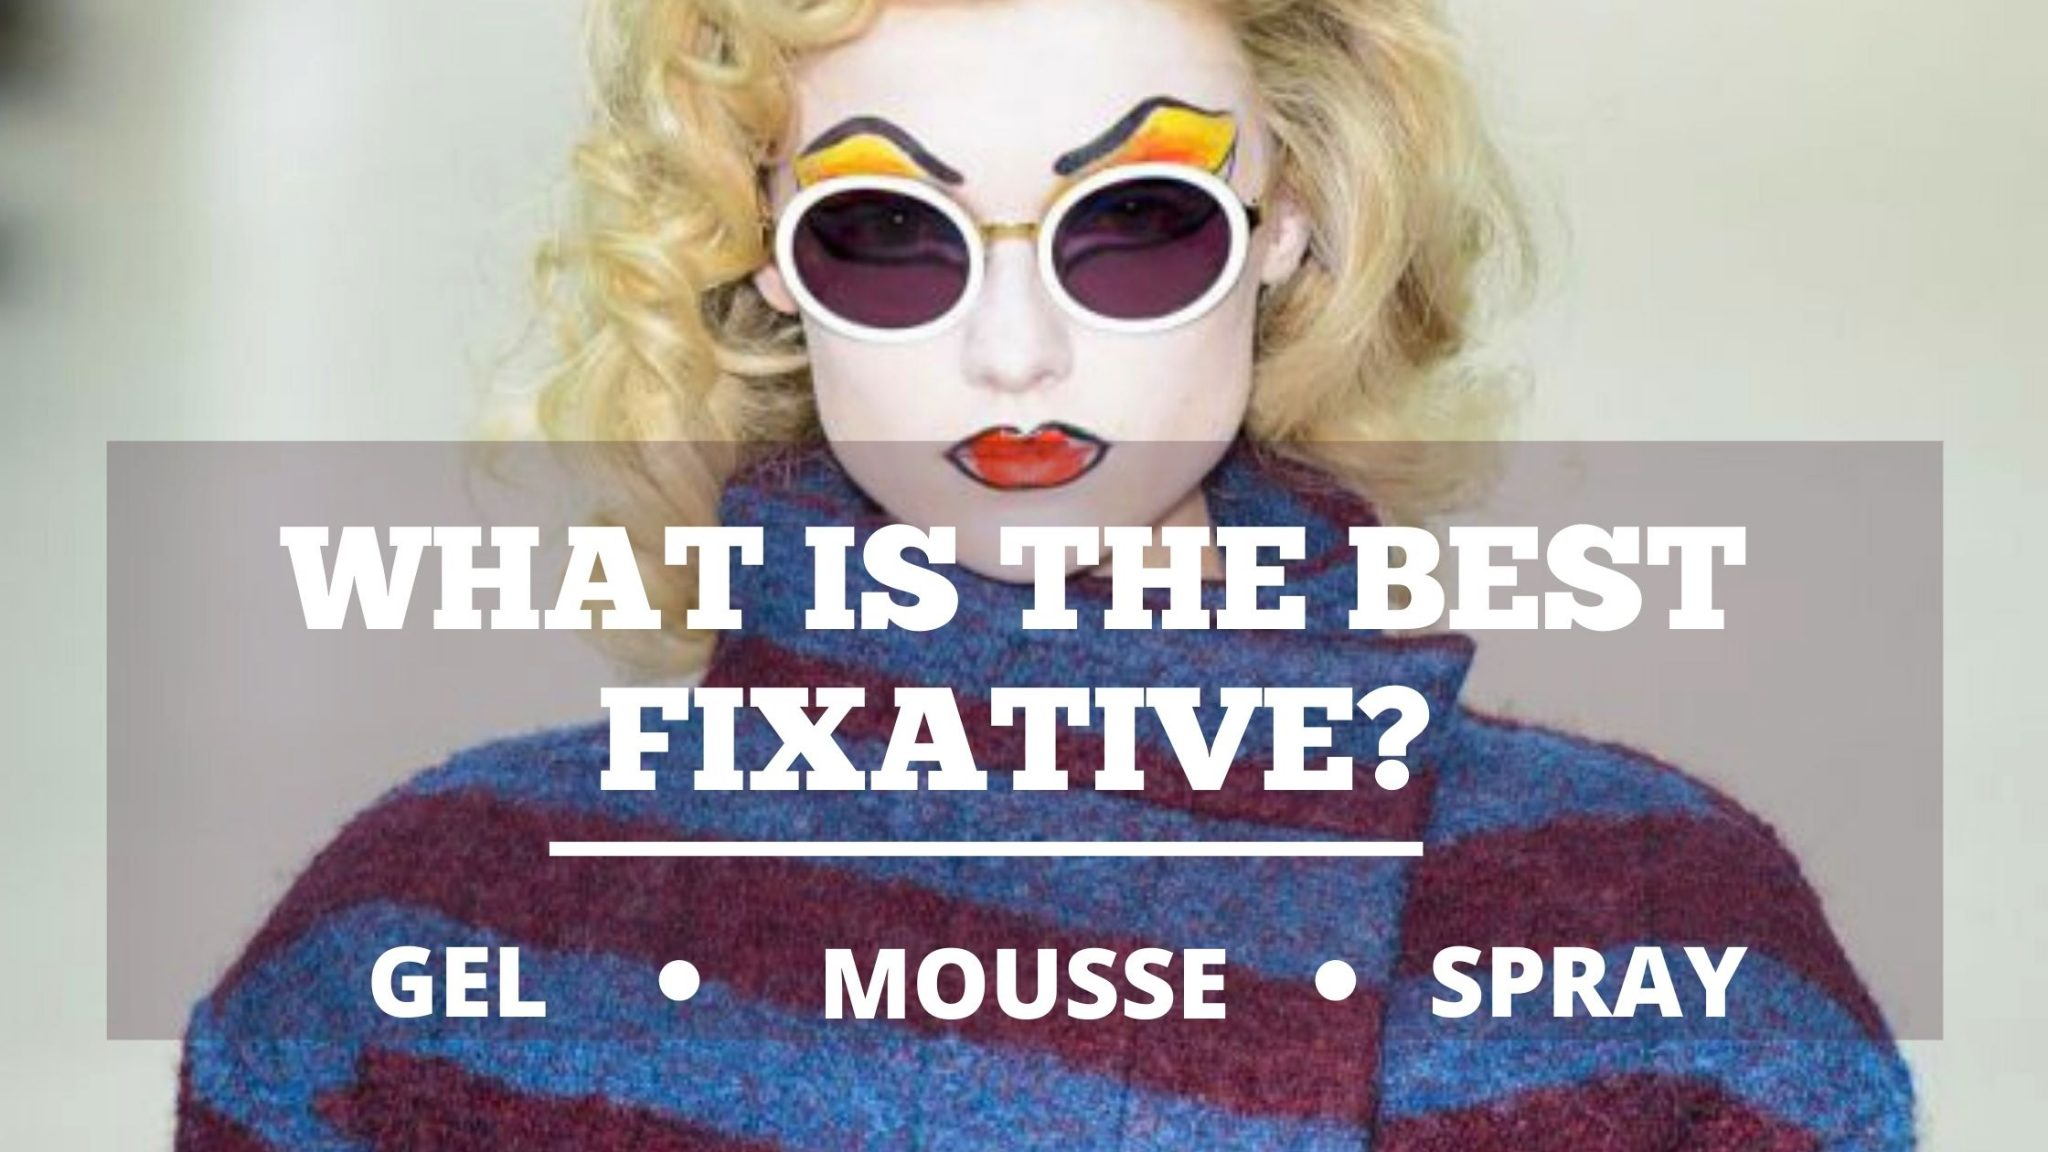 GEL, MOUSSE OR SPRAY, WHAT IS THE BEST FIXATIVE?